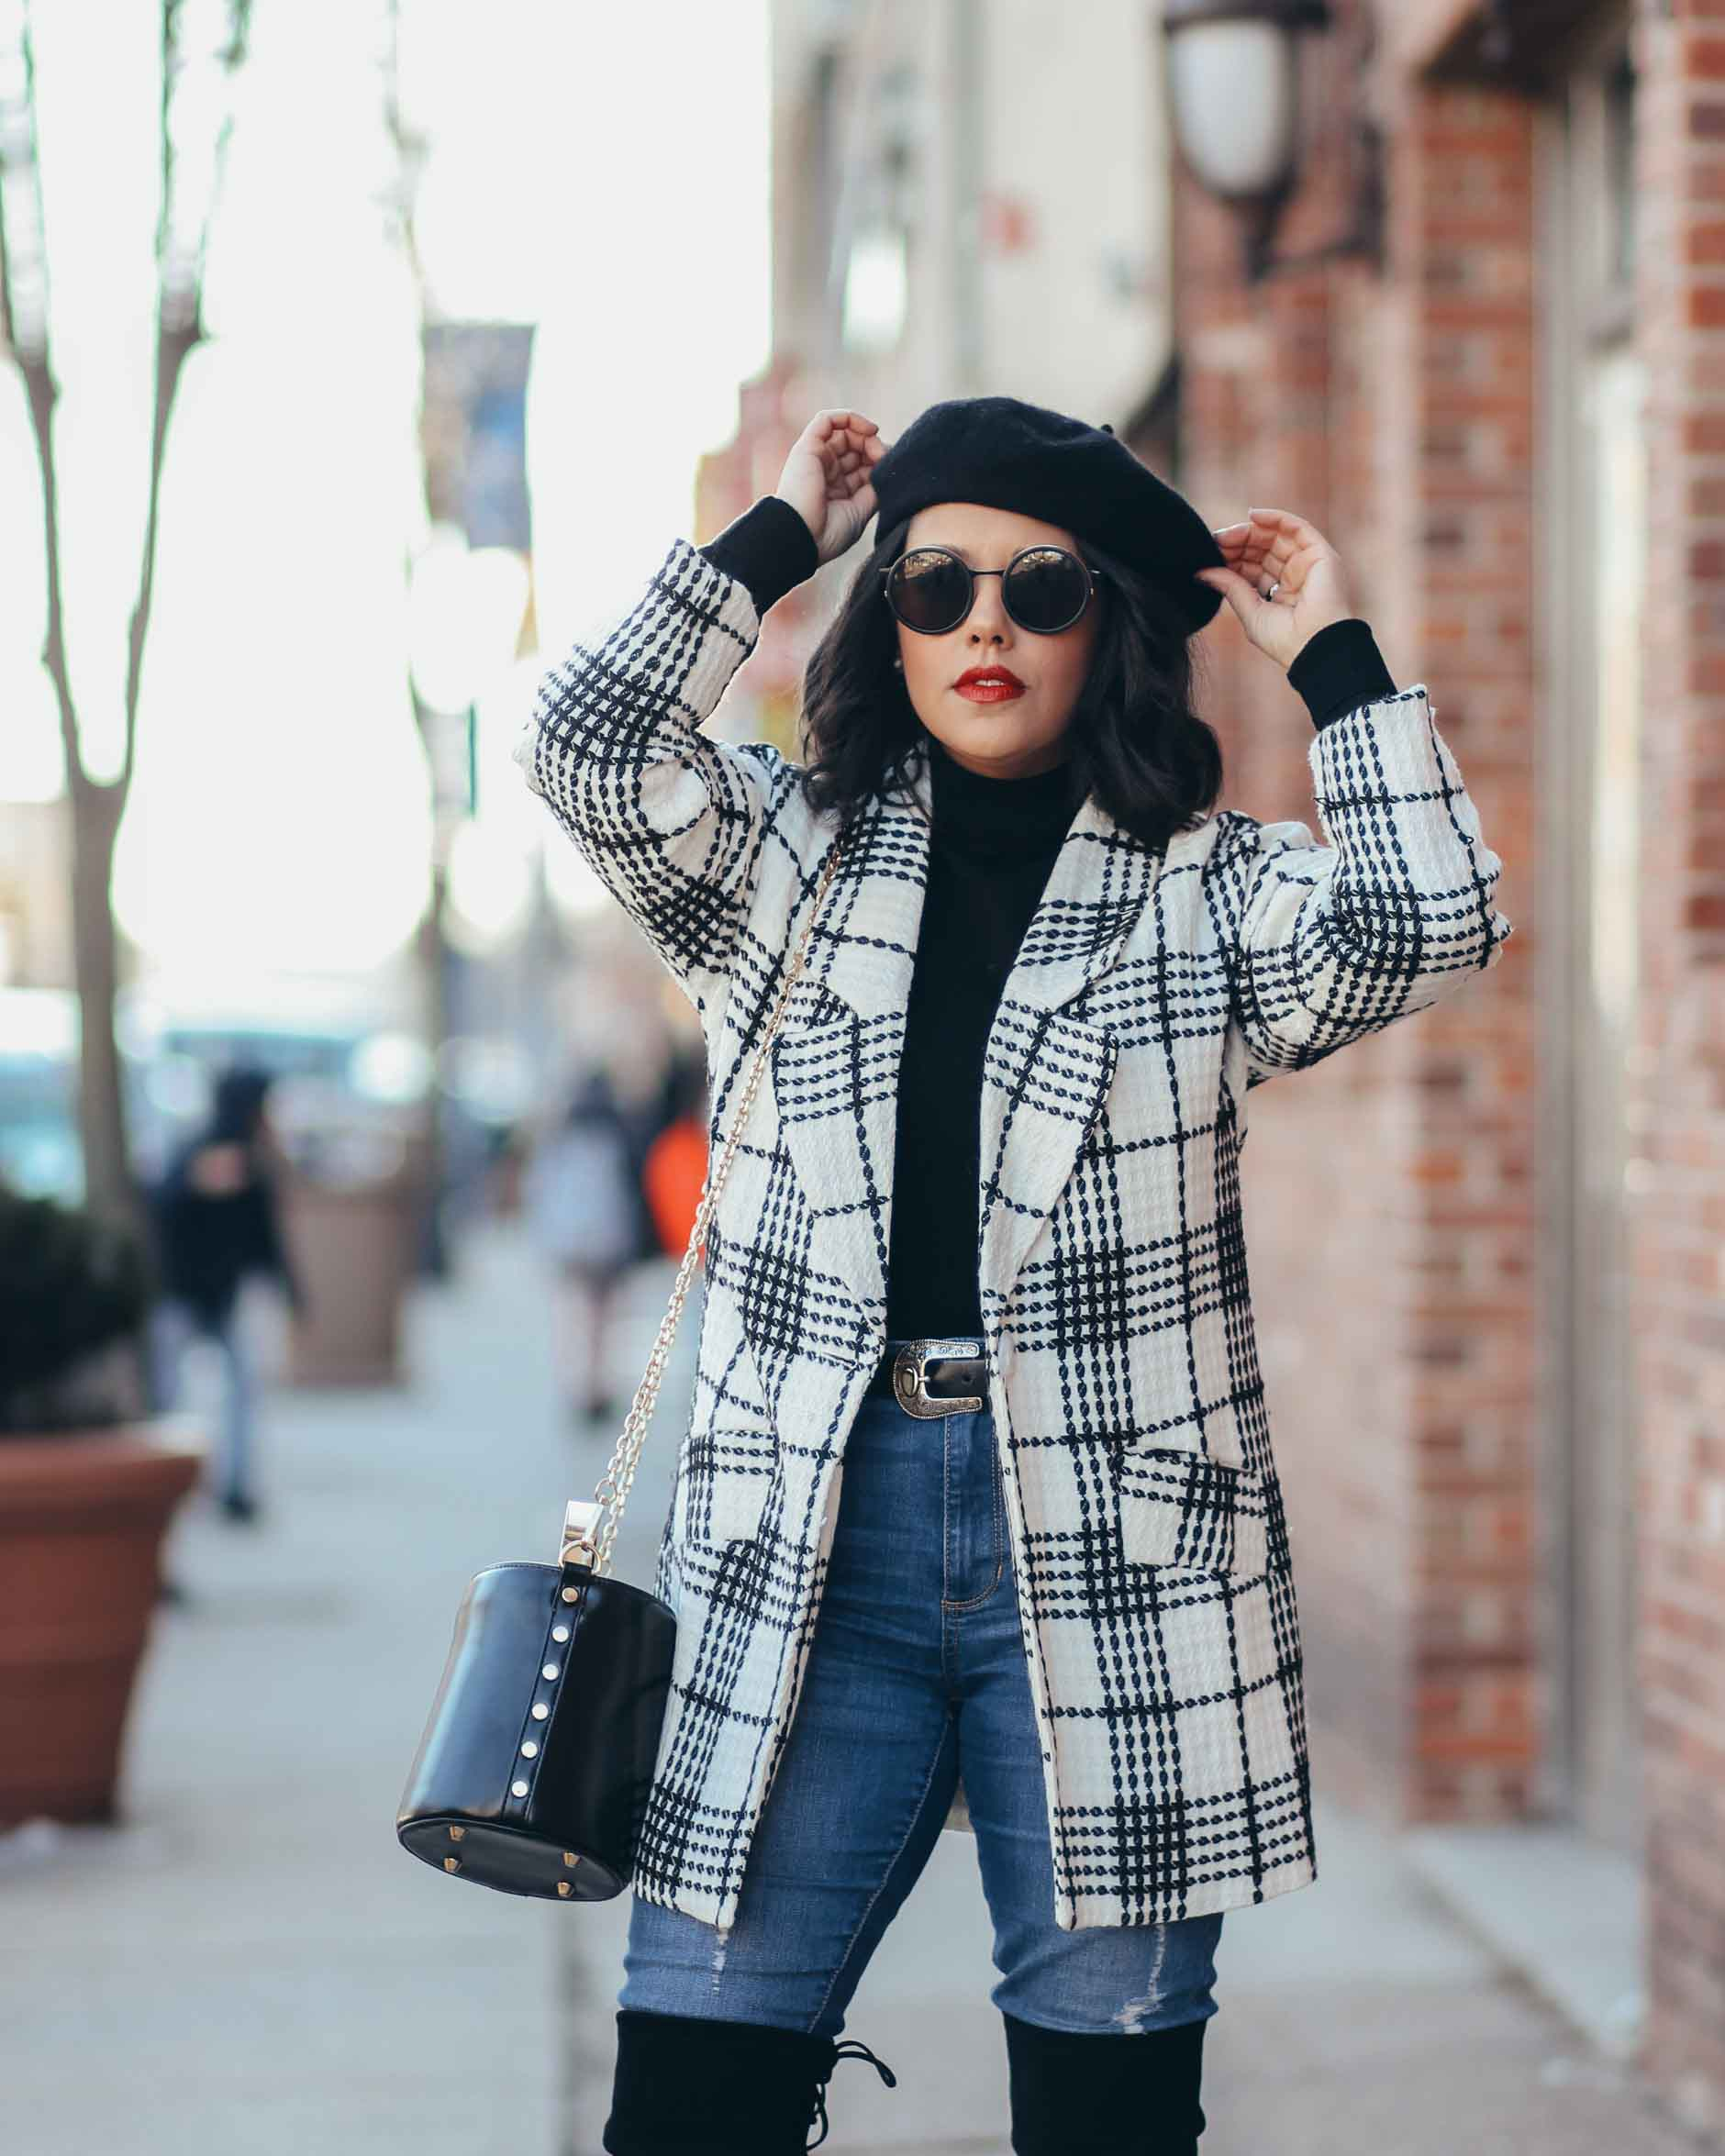 68d6103e1f5 lifestyle blogger naty michele wearing a beret with a black and white coat  and otk boots